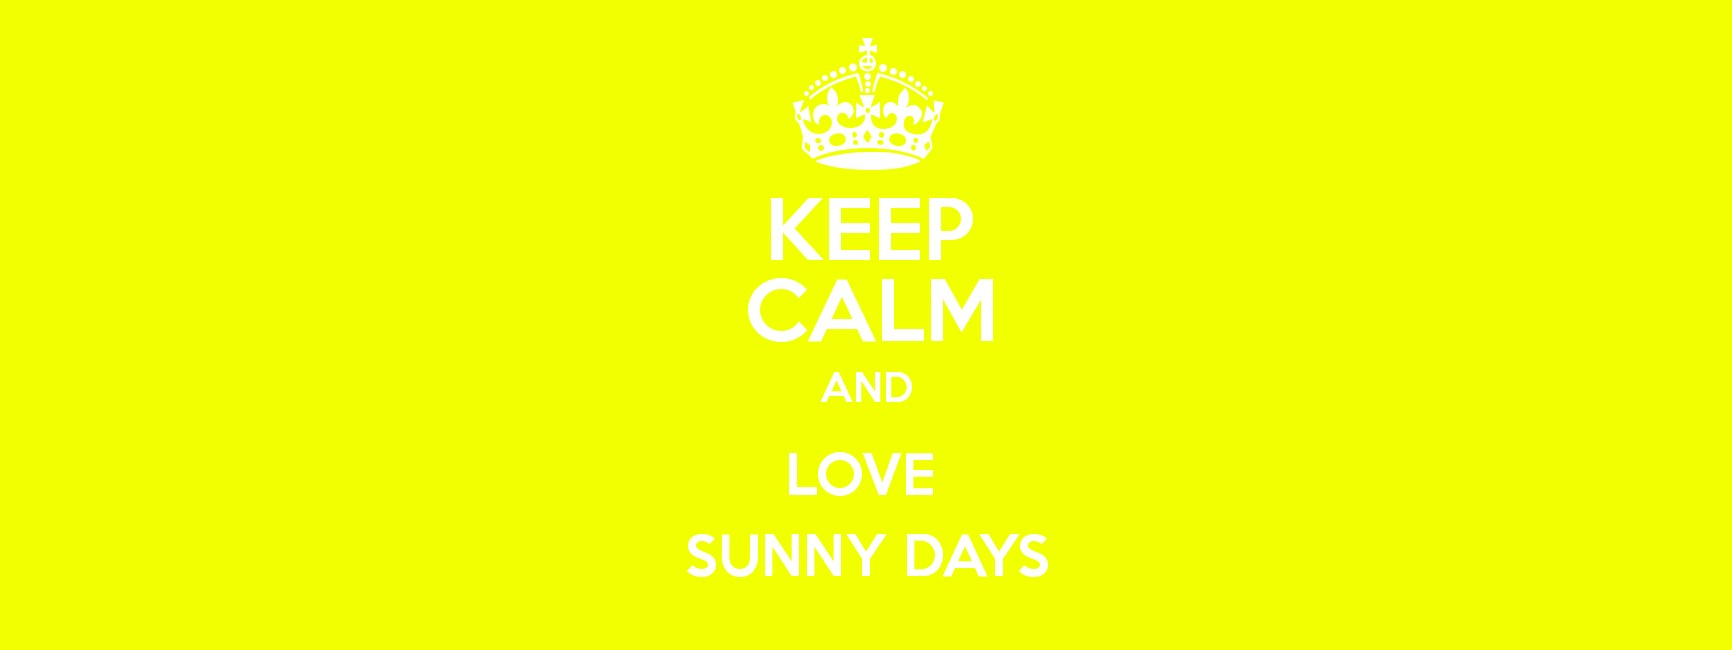 KEEP CALM AND LOVE SUNNY DAYS Poster